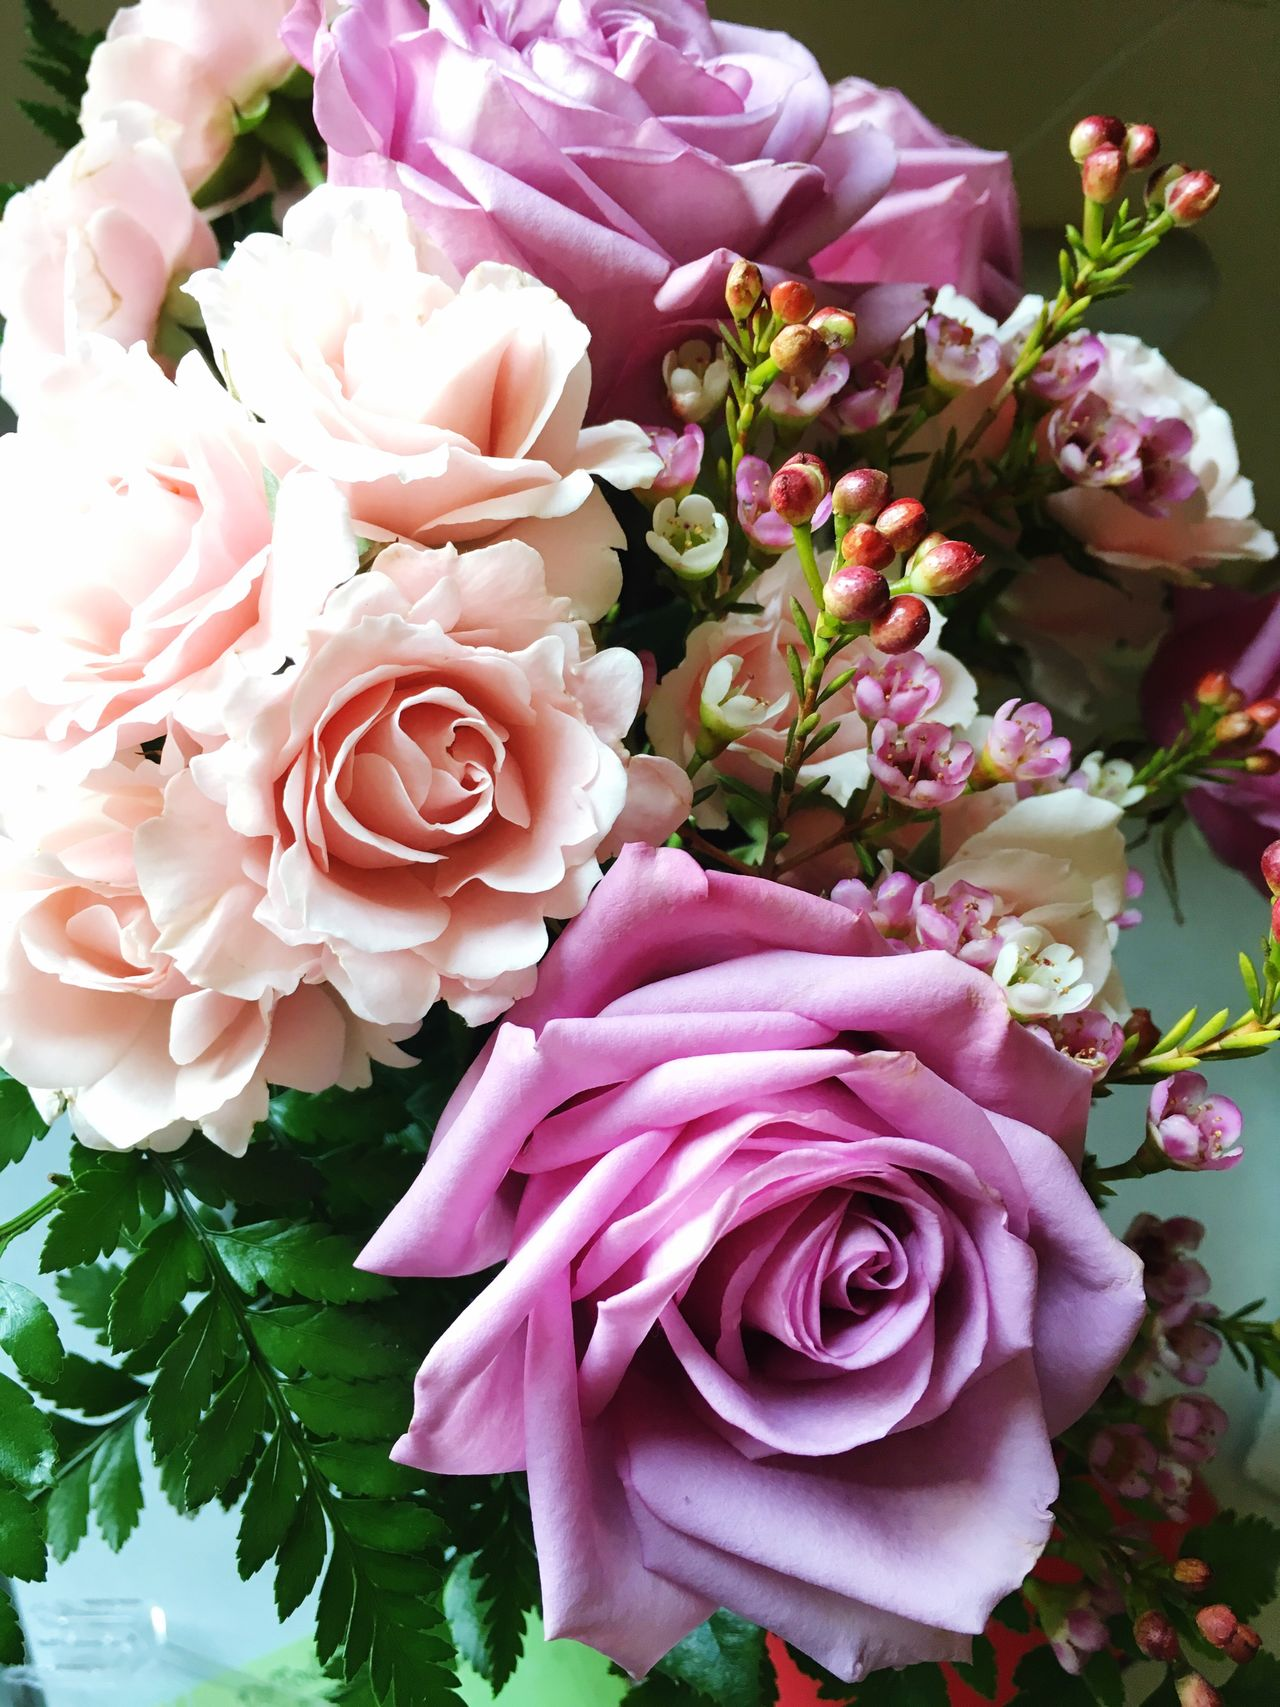 Roses Rose🌹 Pink Lilac Pastel Flowers Flower Flower Collection Flowers, Nature And Beauty Nature Nature_collection Beautiful Nature Nature Photography Naturelovers Beautiful Summer Pink Rose Birthday Birthday Flowers